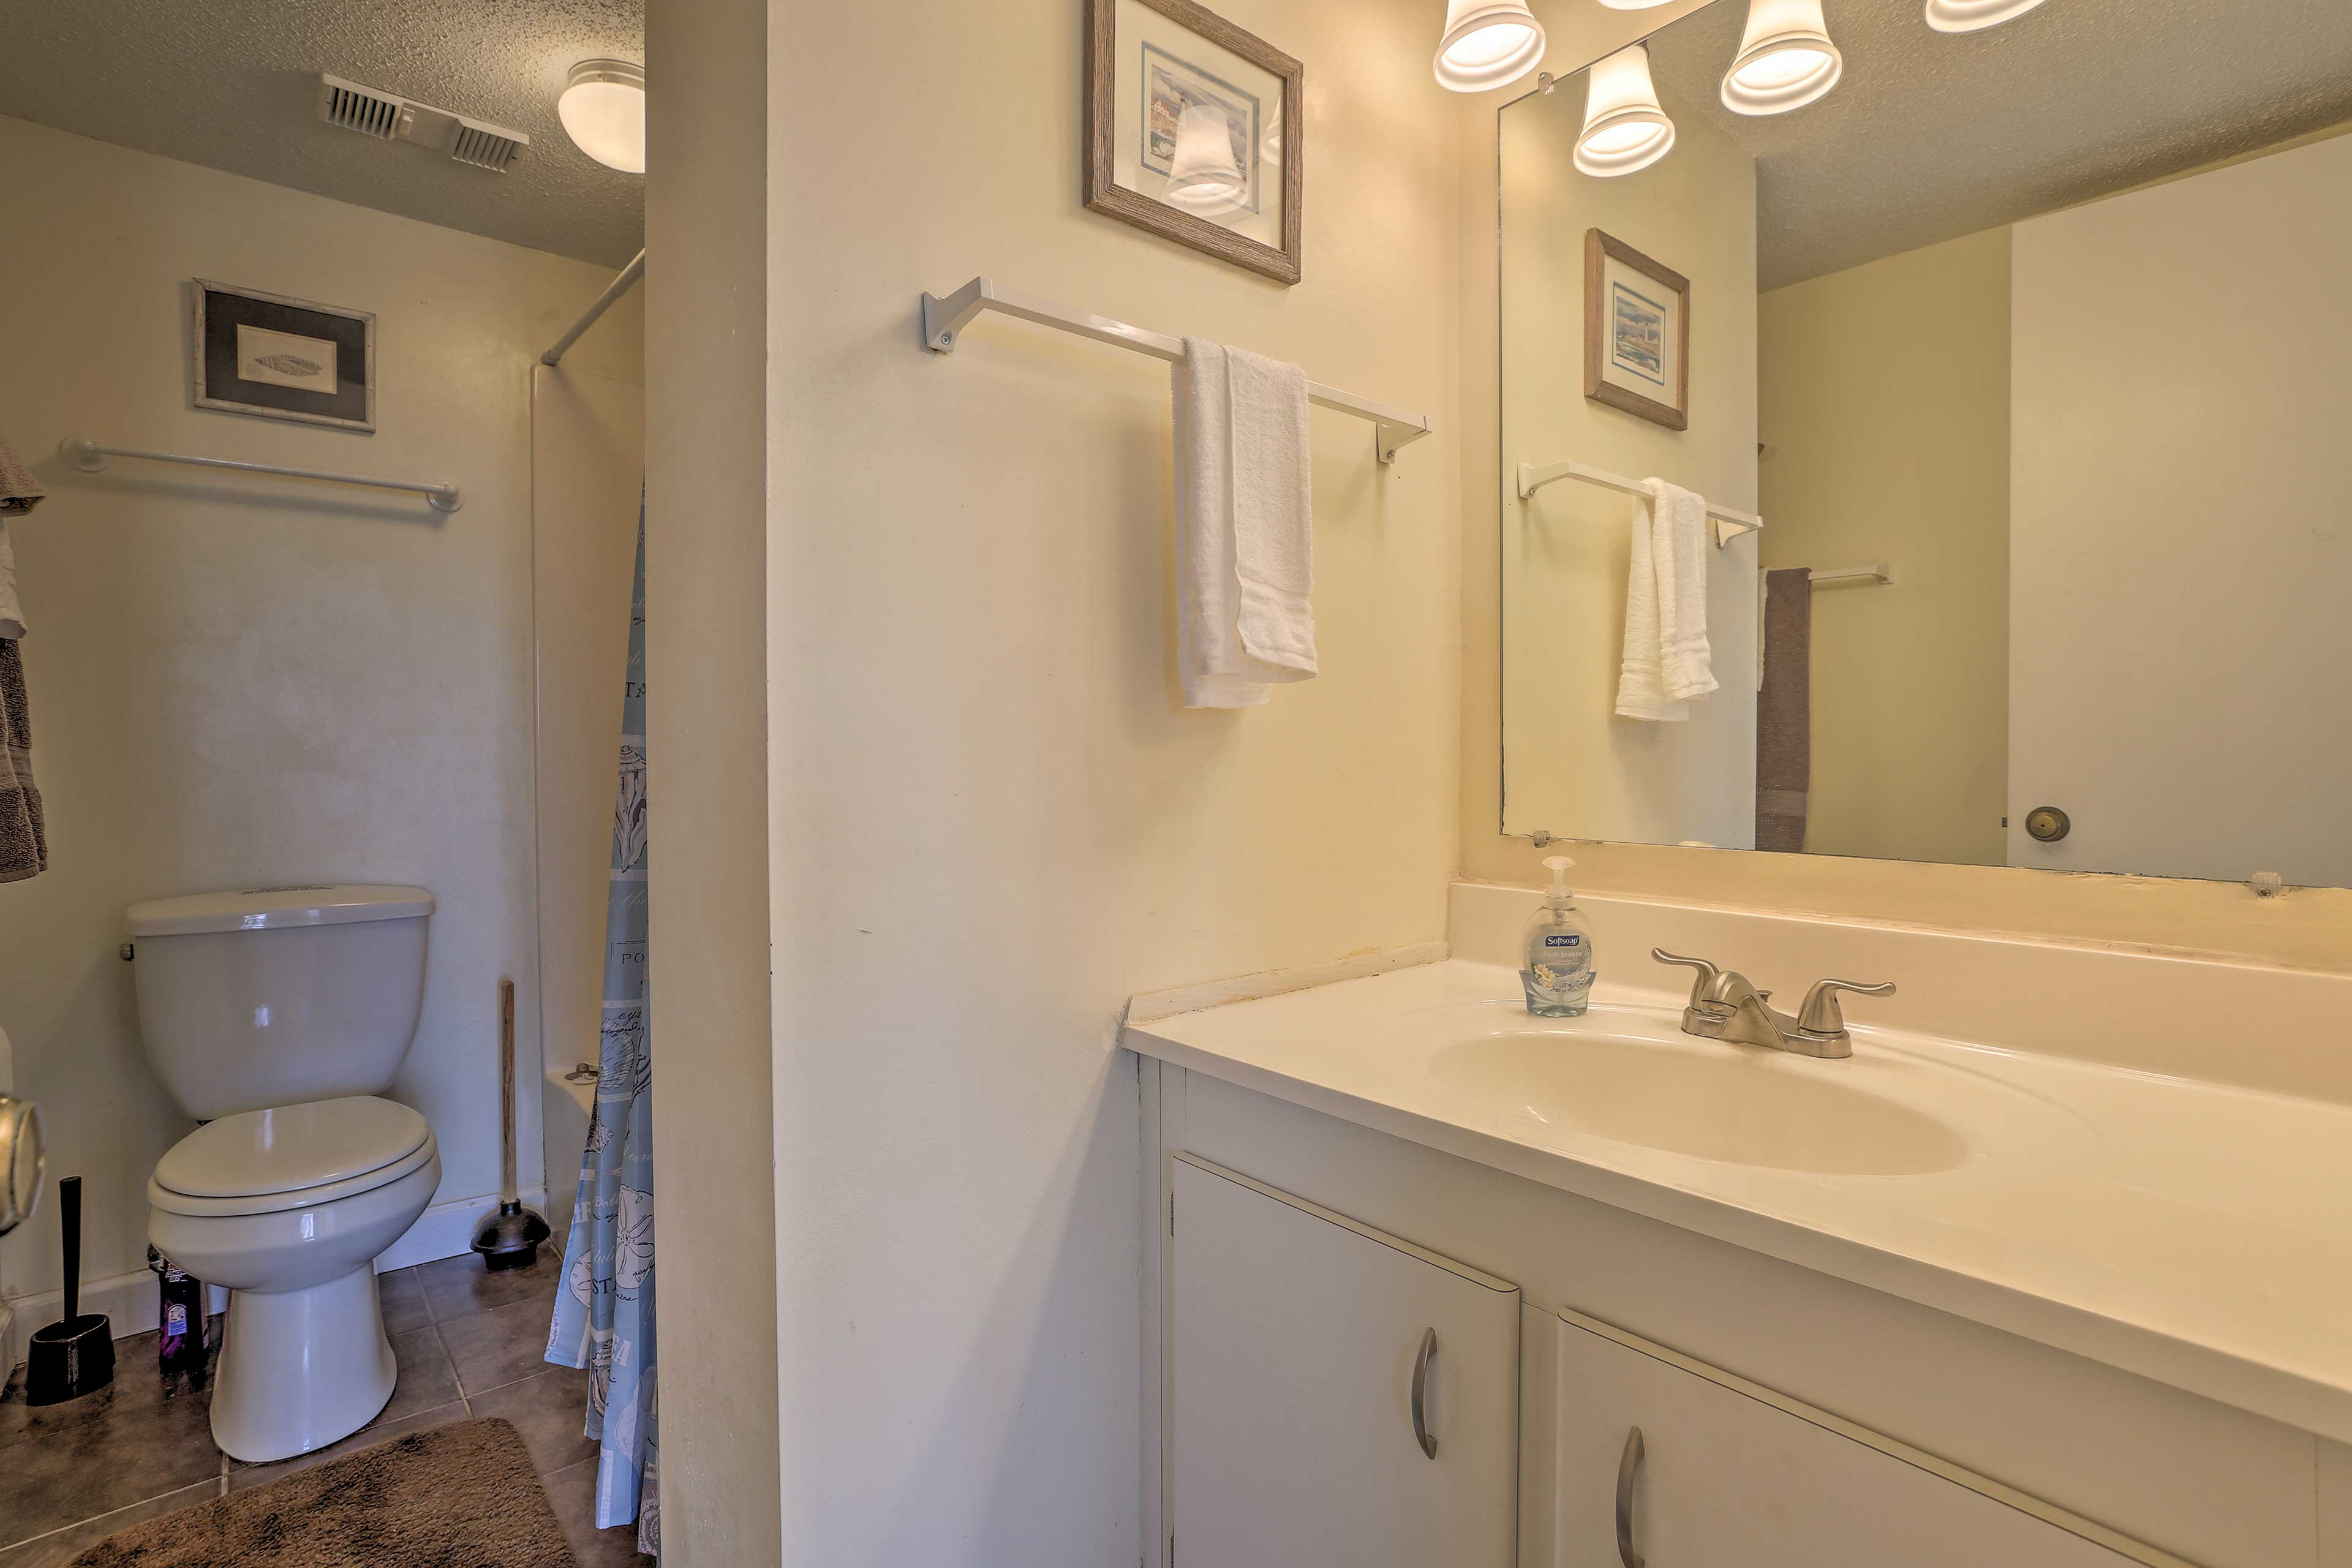 The en-suite bathroom includes a shower/tub combo and mirrored vanity.